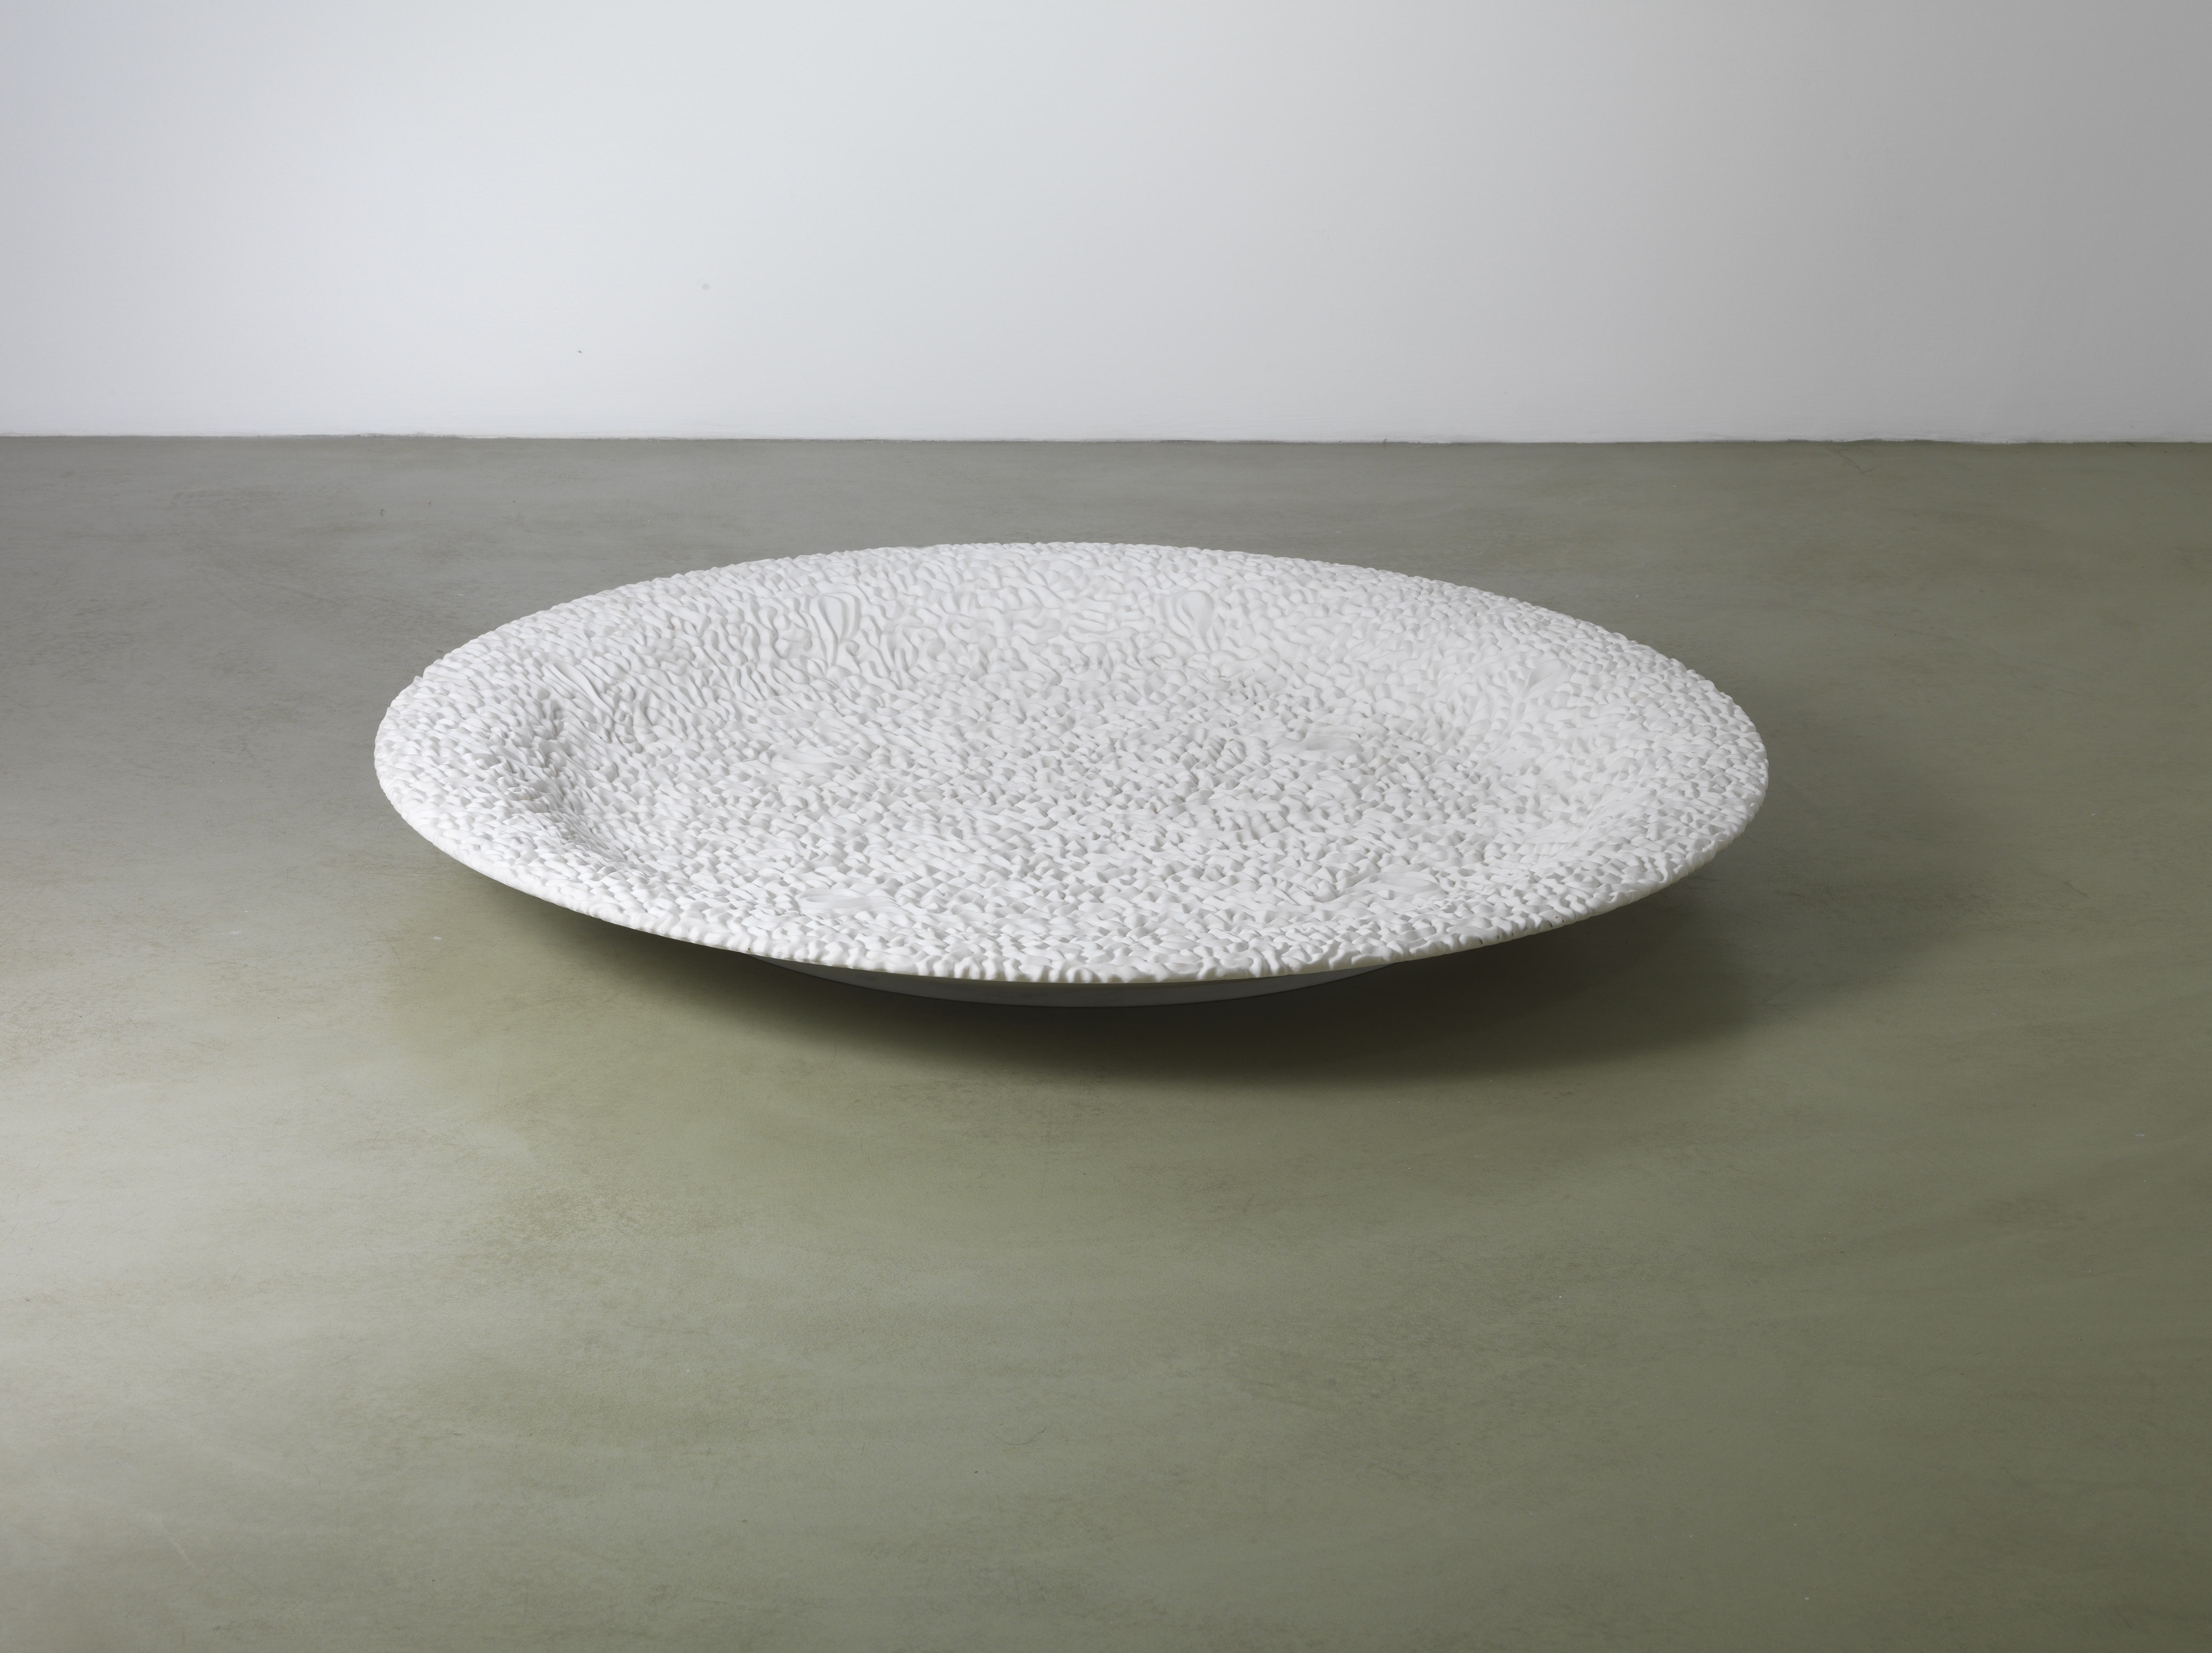 Ai Weiwei - Marble Plate - 2010 - marmo - courtesy the artist & Lisson Gallery